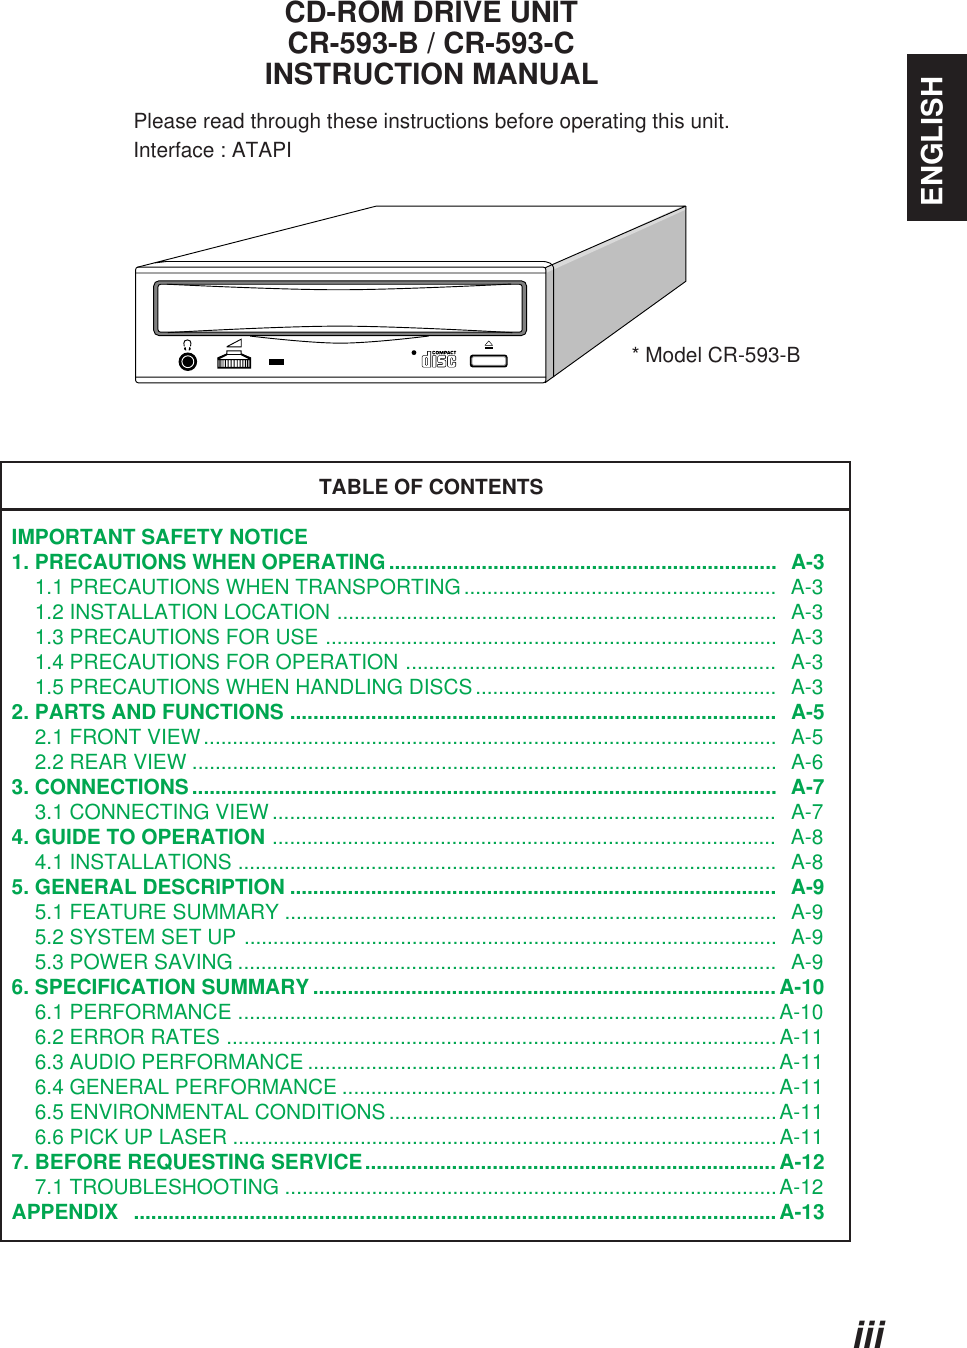 ENGLISHiiiCD-ROM DRIVE UNITCR-593-B / CR-593-CINSTRUCTION MANUALPlease read through these instructions before operating this unit.                     Interface : ATAPITABLE OF CONTENTSIMPORTANT SAFETY NOTICE1. PRECAUTIONS WHEN OPERATING...................................................................  A-3    1.1 PRECAUTIONS WHEN TRANSPORTING......................................................  A-3    1.2 INSTALLATION LOCATION ............................................................................  A-3    1.3 PRECAUTIONS FOR USE ..............................................................................  A-3    1.4 PRECAUTIONS FOR OPERATION ................................................................   A-3    1.5 PRECAUTIONS WHEN HANDLING DISCS....................................................   A-32. PARTS AND FUNCTIONS ....................................................................................   A-5    2.1 FRONT VIEW...................................................................................................  A-5    2.2 REAR VIEW .....................................................................................................  A-63. CONNECTIONS.....................................................................................................  A-7    3.1 CONNECTING VIEW .......................................................................................   A-74. GUIDE TO OPERATION .......................................................................................   A-8    4.1 INSTALLATIONS .............................................................................................   A-85. GENERAL DESCRIPTION ....................................................................................  A-9    5.1 FEATURE SUMMARY .....................................................................................  A-9    5.2 SYSTEM SET UP ............................................................................................